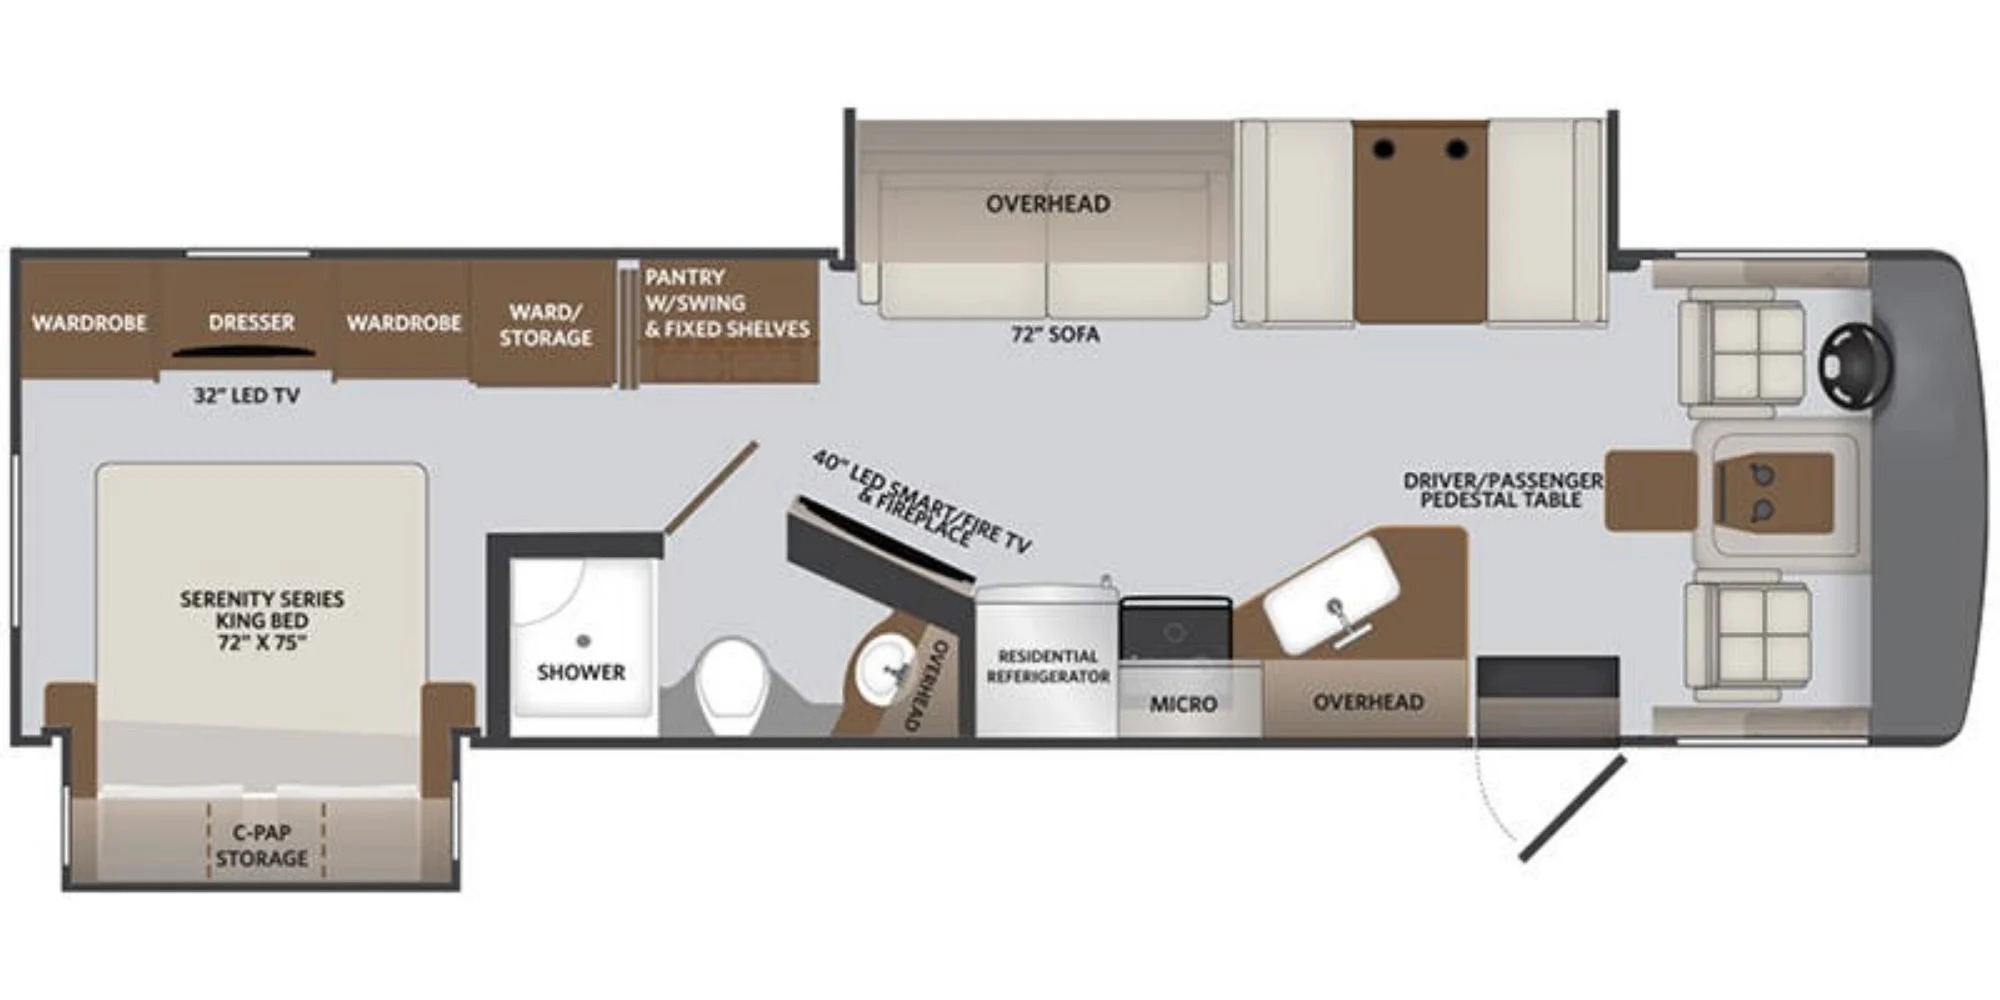 View Floor Plan for 2022 HOLIDAY RAMBLER INVICTA 34MB